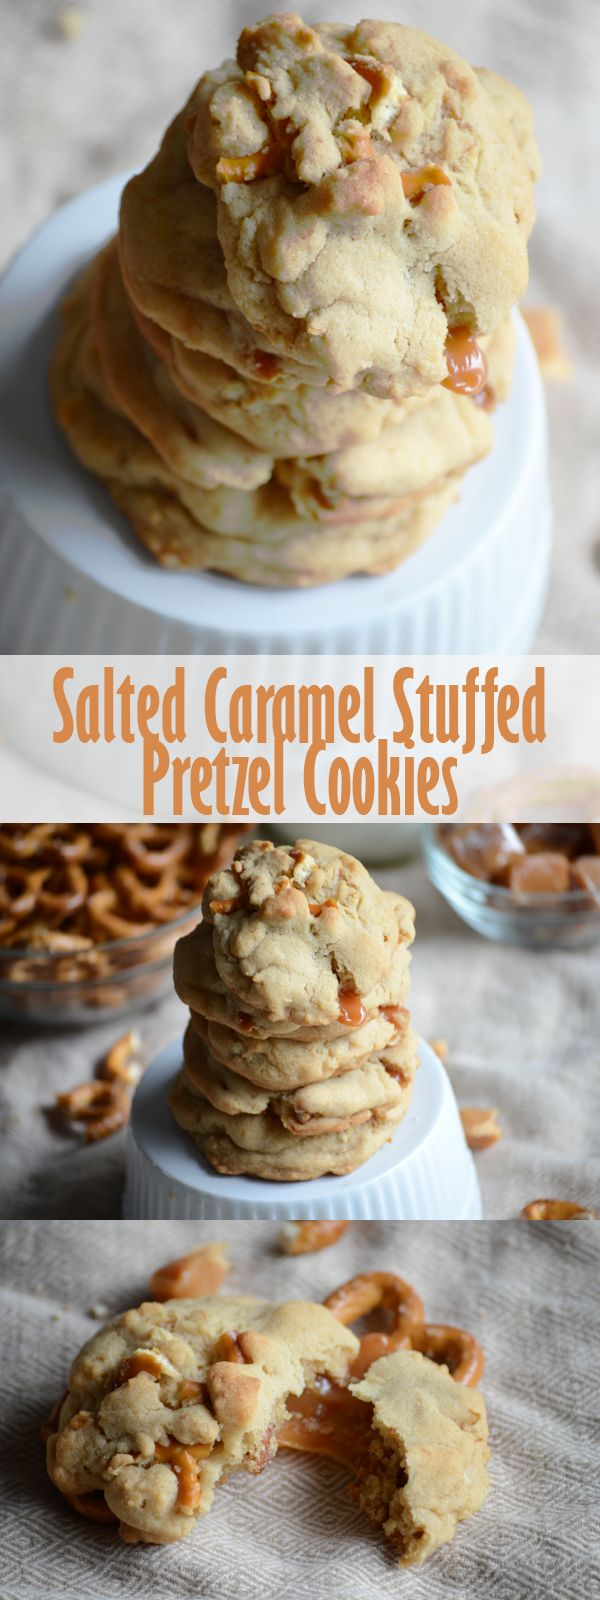 Salted caramel stuffed pretzel cookies combine all of your favorite flavors into one delicious and irrestiable treat!